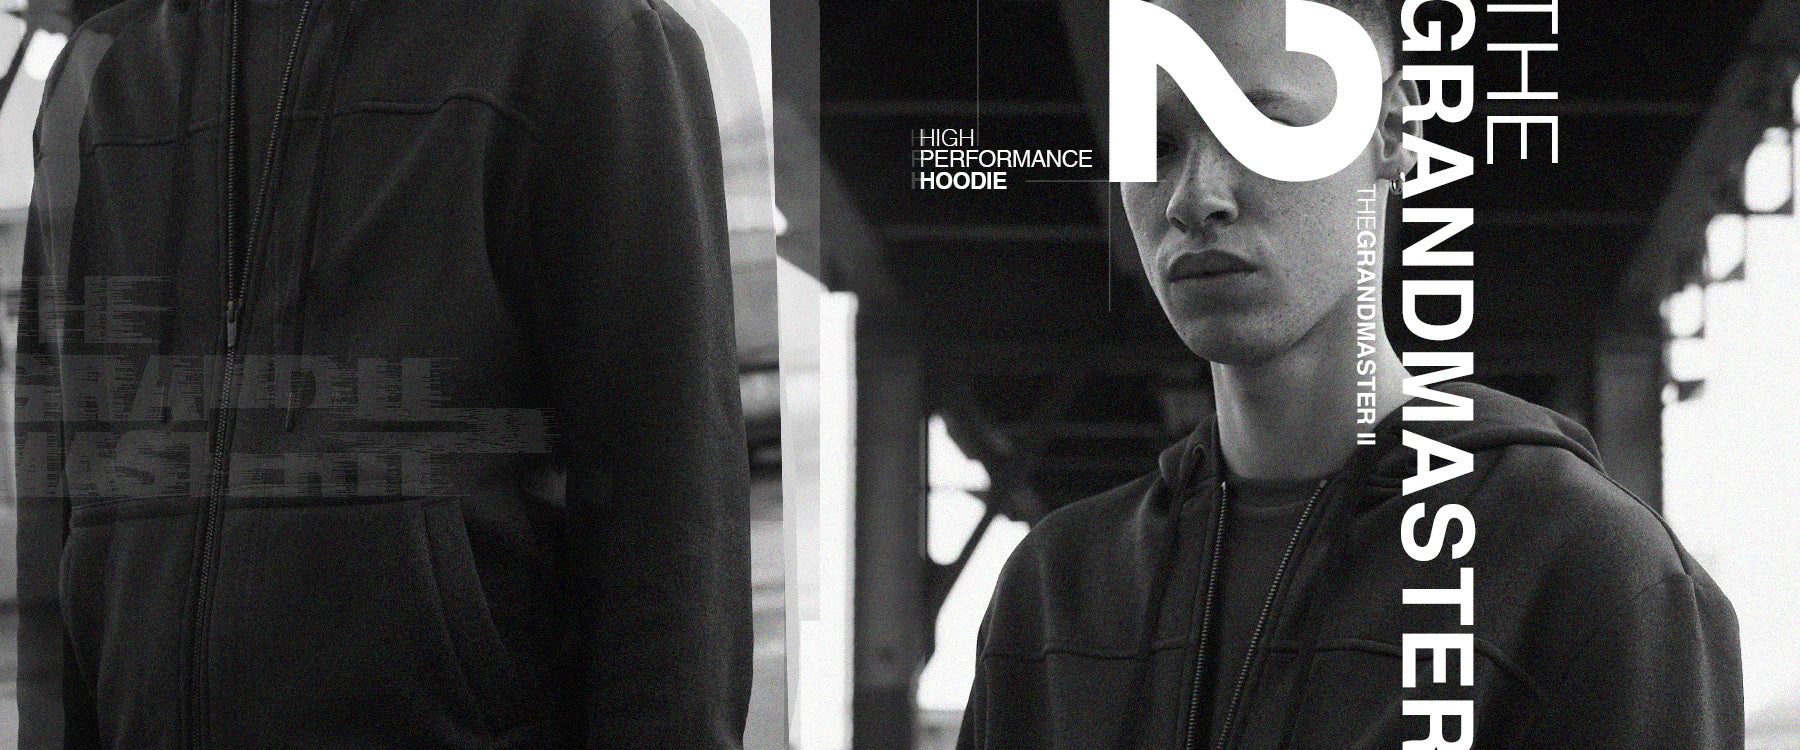 The Grandmaster II : High-Performance Hoodie